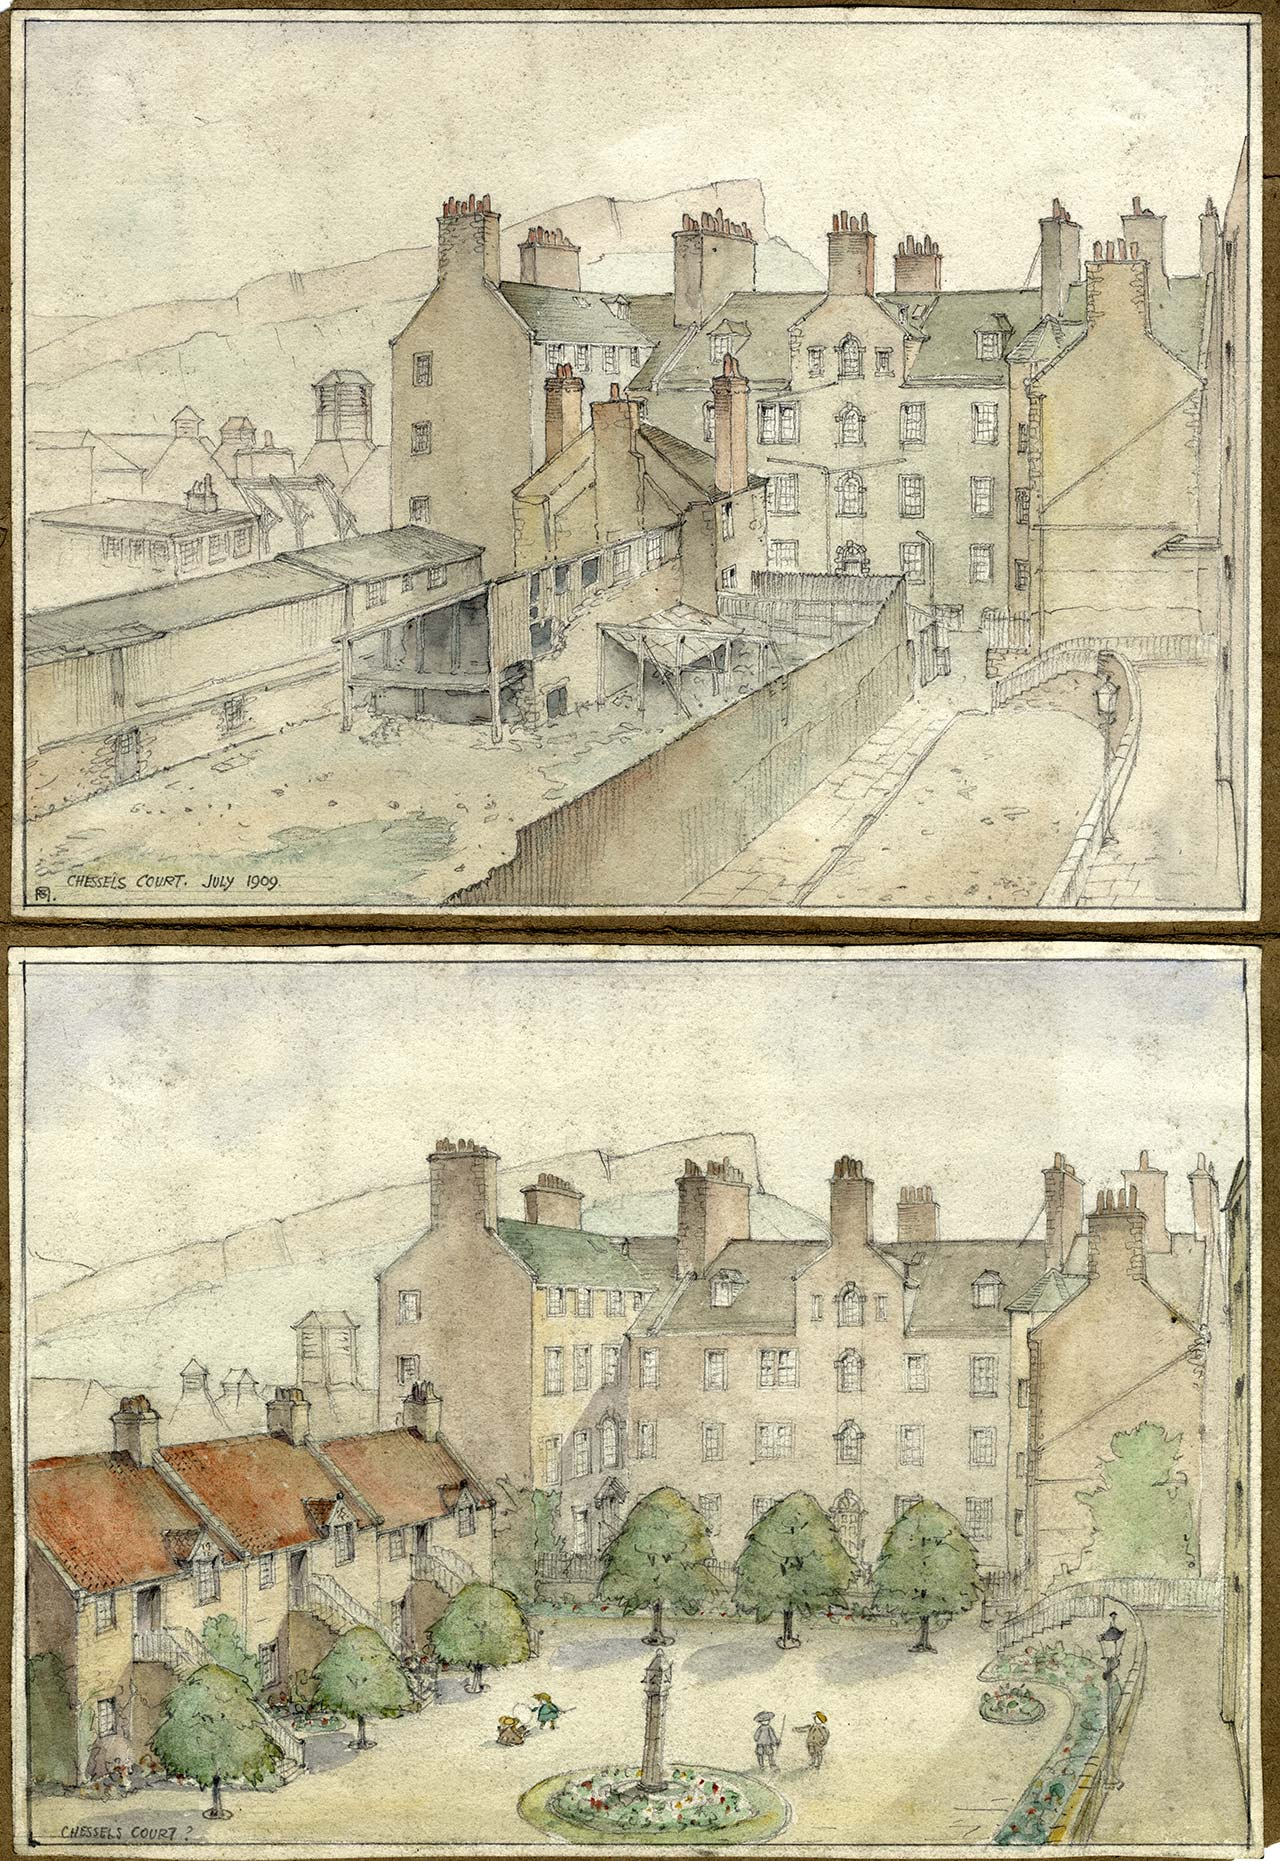 Chessel's Court by Norah Geddes, 1909